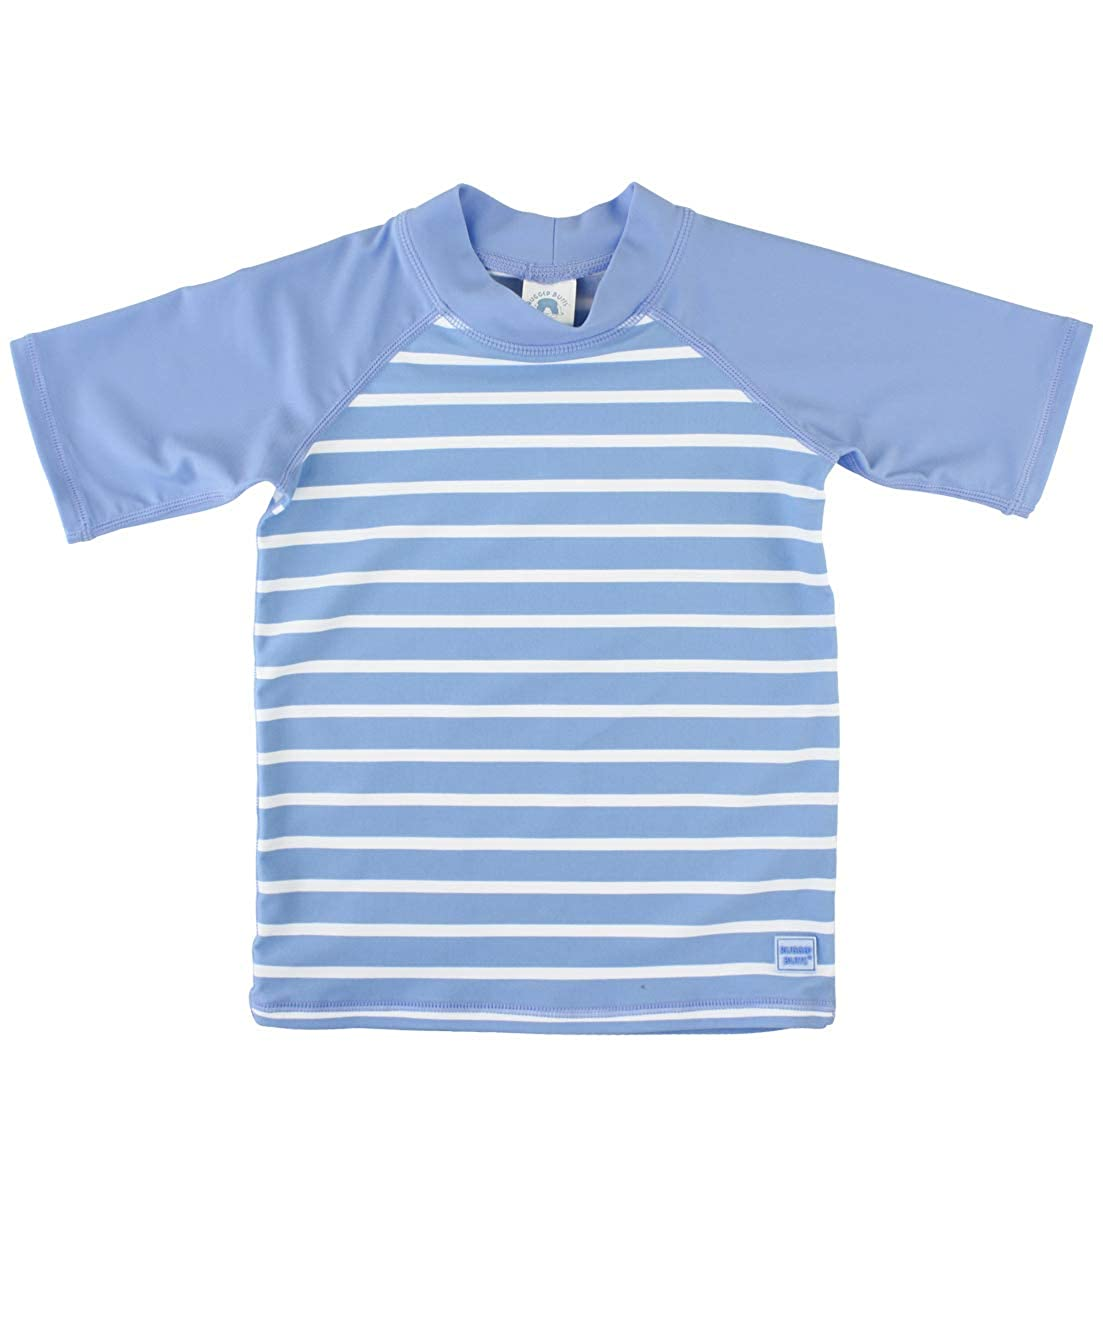 f9d85cf45 Amazon.com: RuggedButts Baby/Toddler Boys Short Sleeve Striped Rash Guard  Swim Shirt with UPF 50+ Sun Protection: Clothing